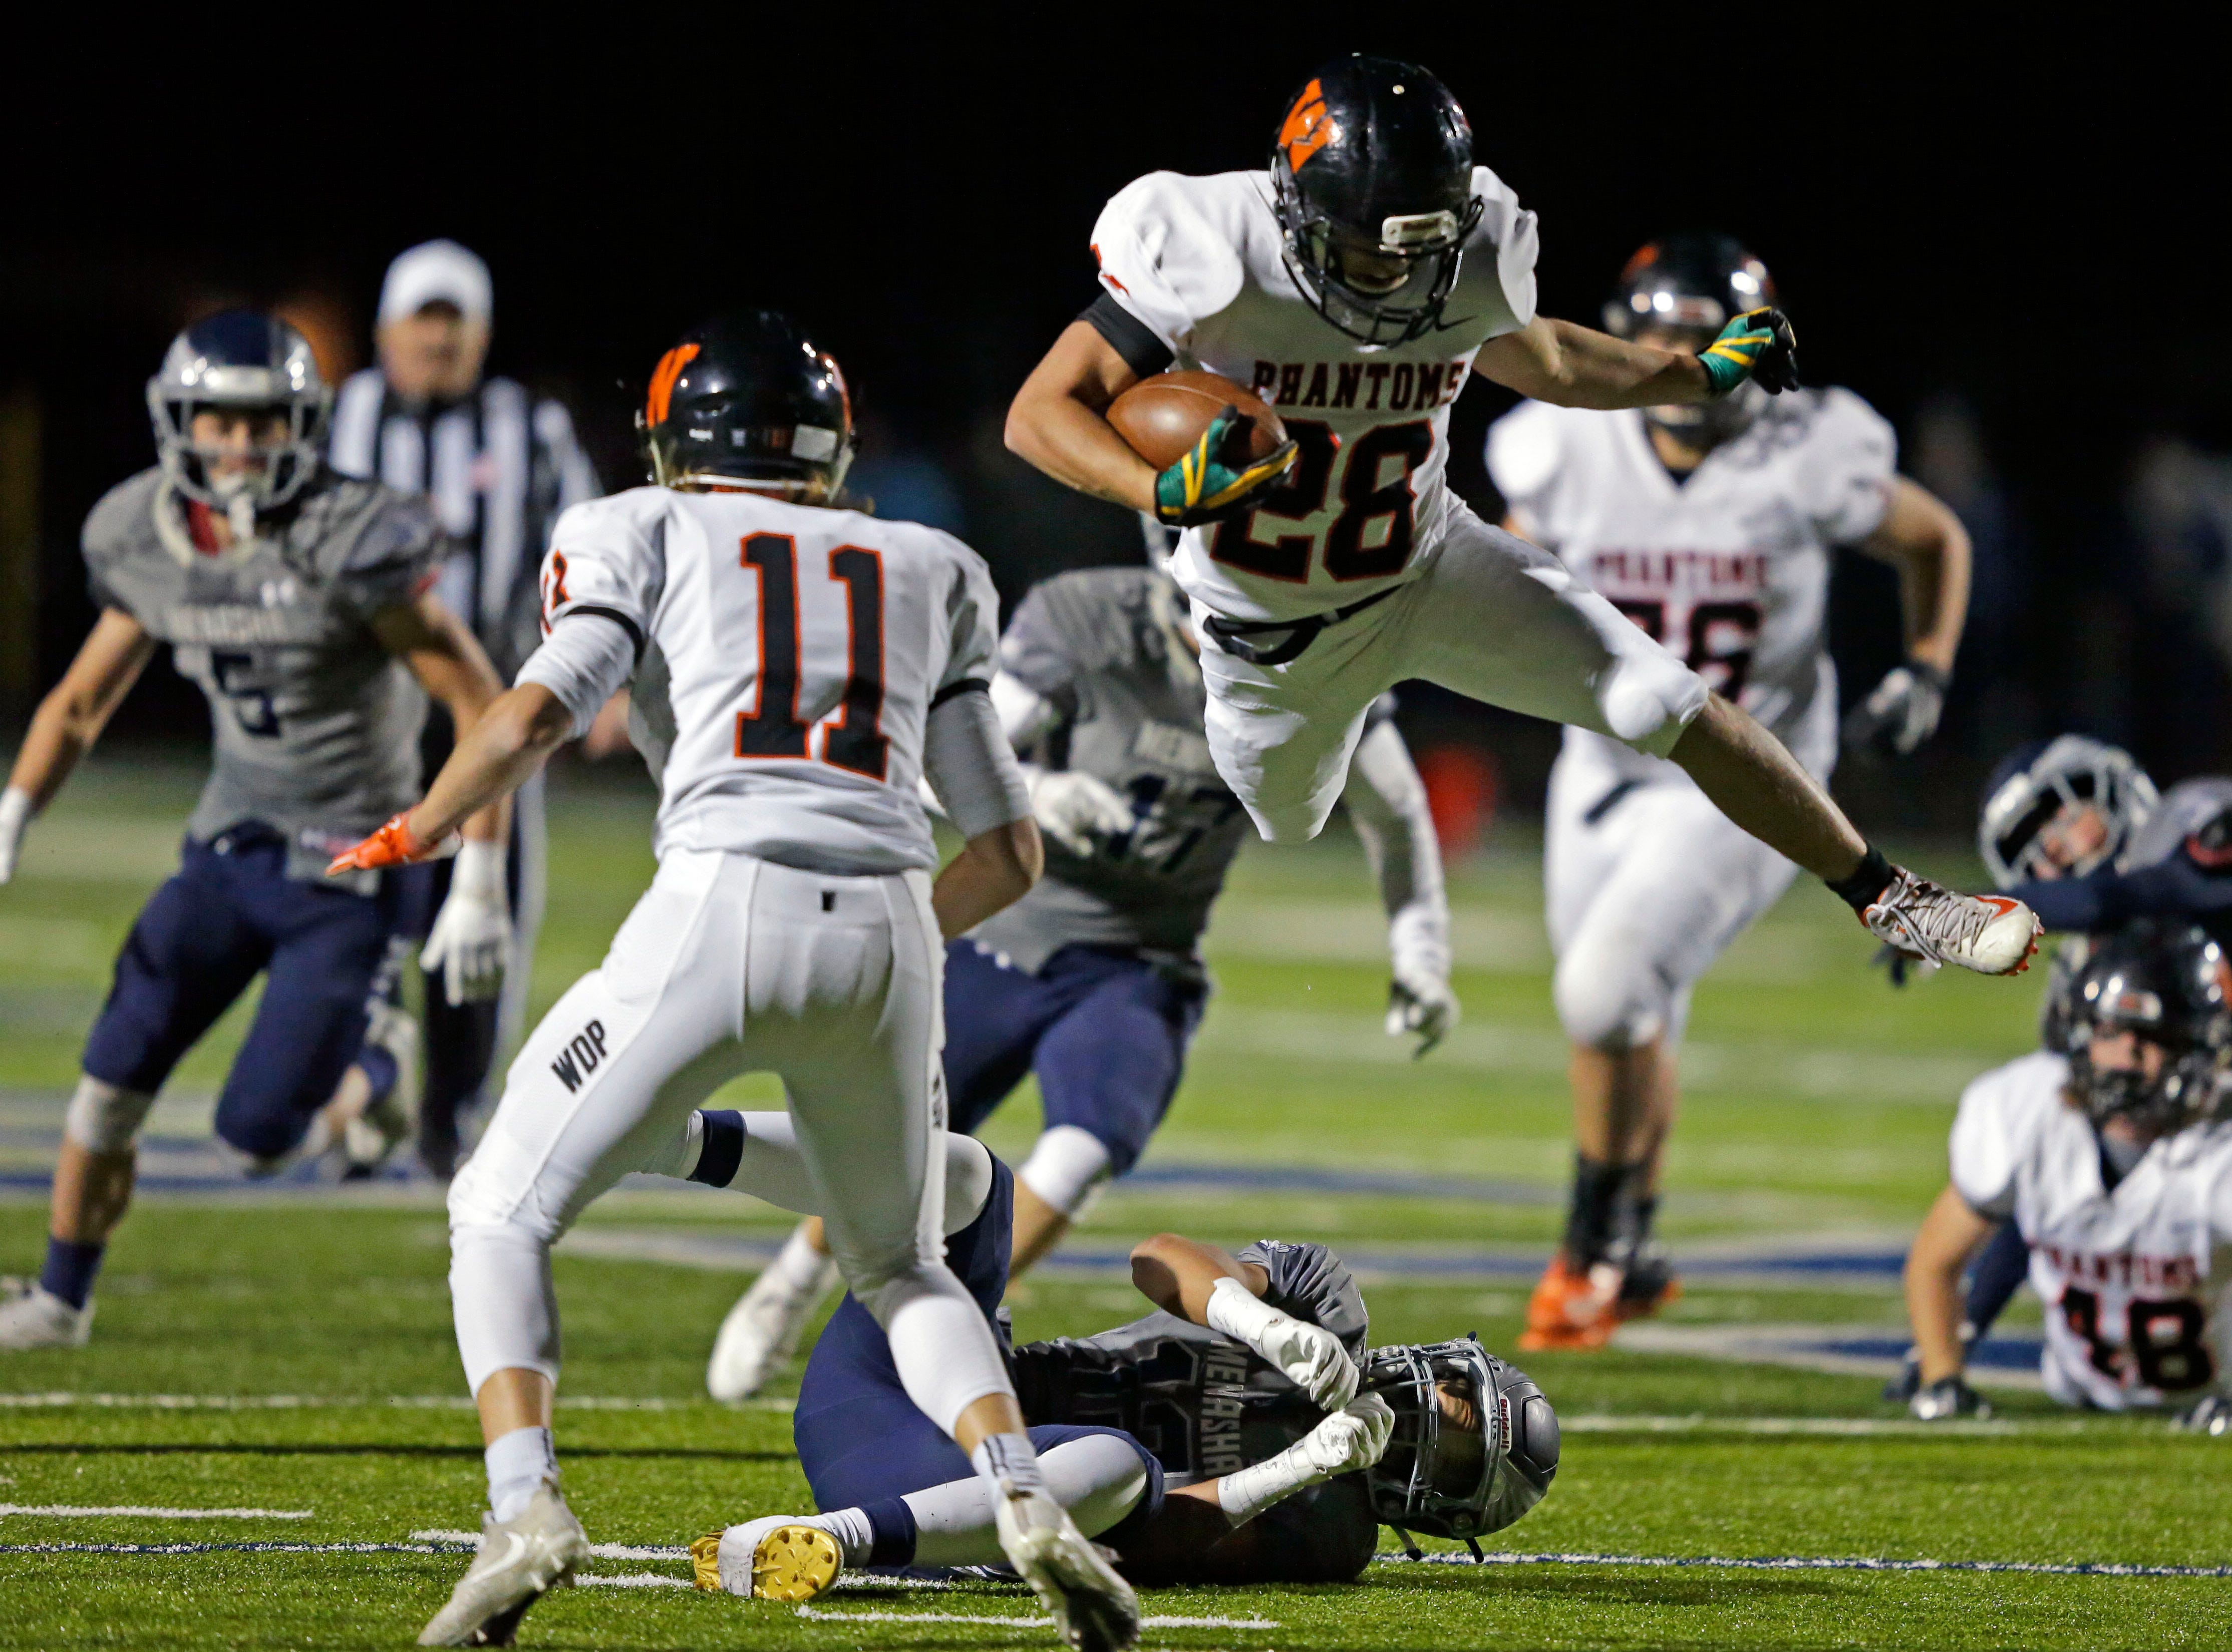 David Vanderlogt of West De Pere leaps over Leviathian Fleming of Menasha in a Bay Conference football game Friday, September 28, 2018, at Calder Stadium in Menasha, Wis.Ron Page/USA TODAY NETWORK-Wisconsin